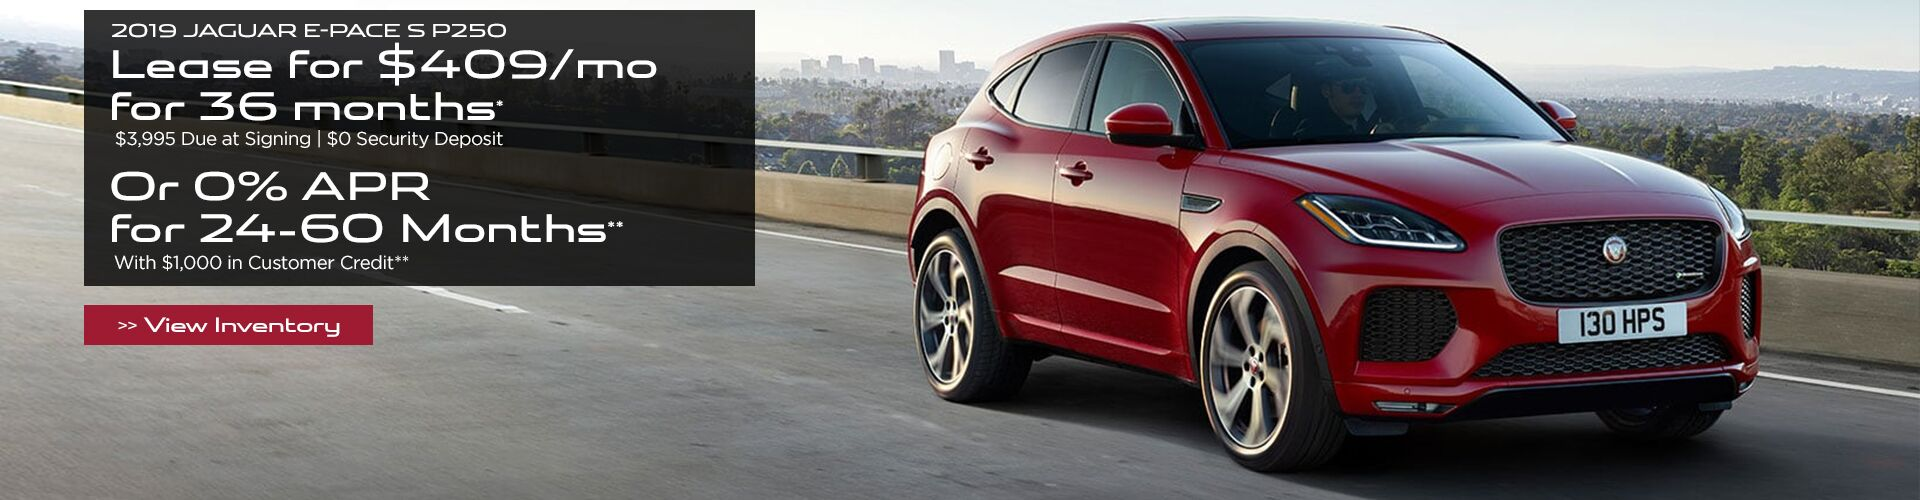 New 2019 Jaguar E-Pace in San Antonio TX, serving Boerne, San Marcos